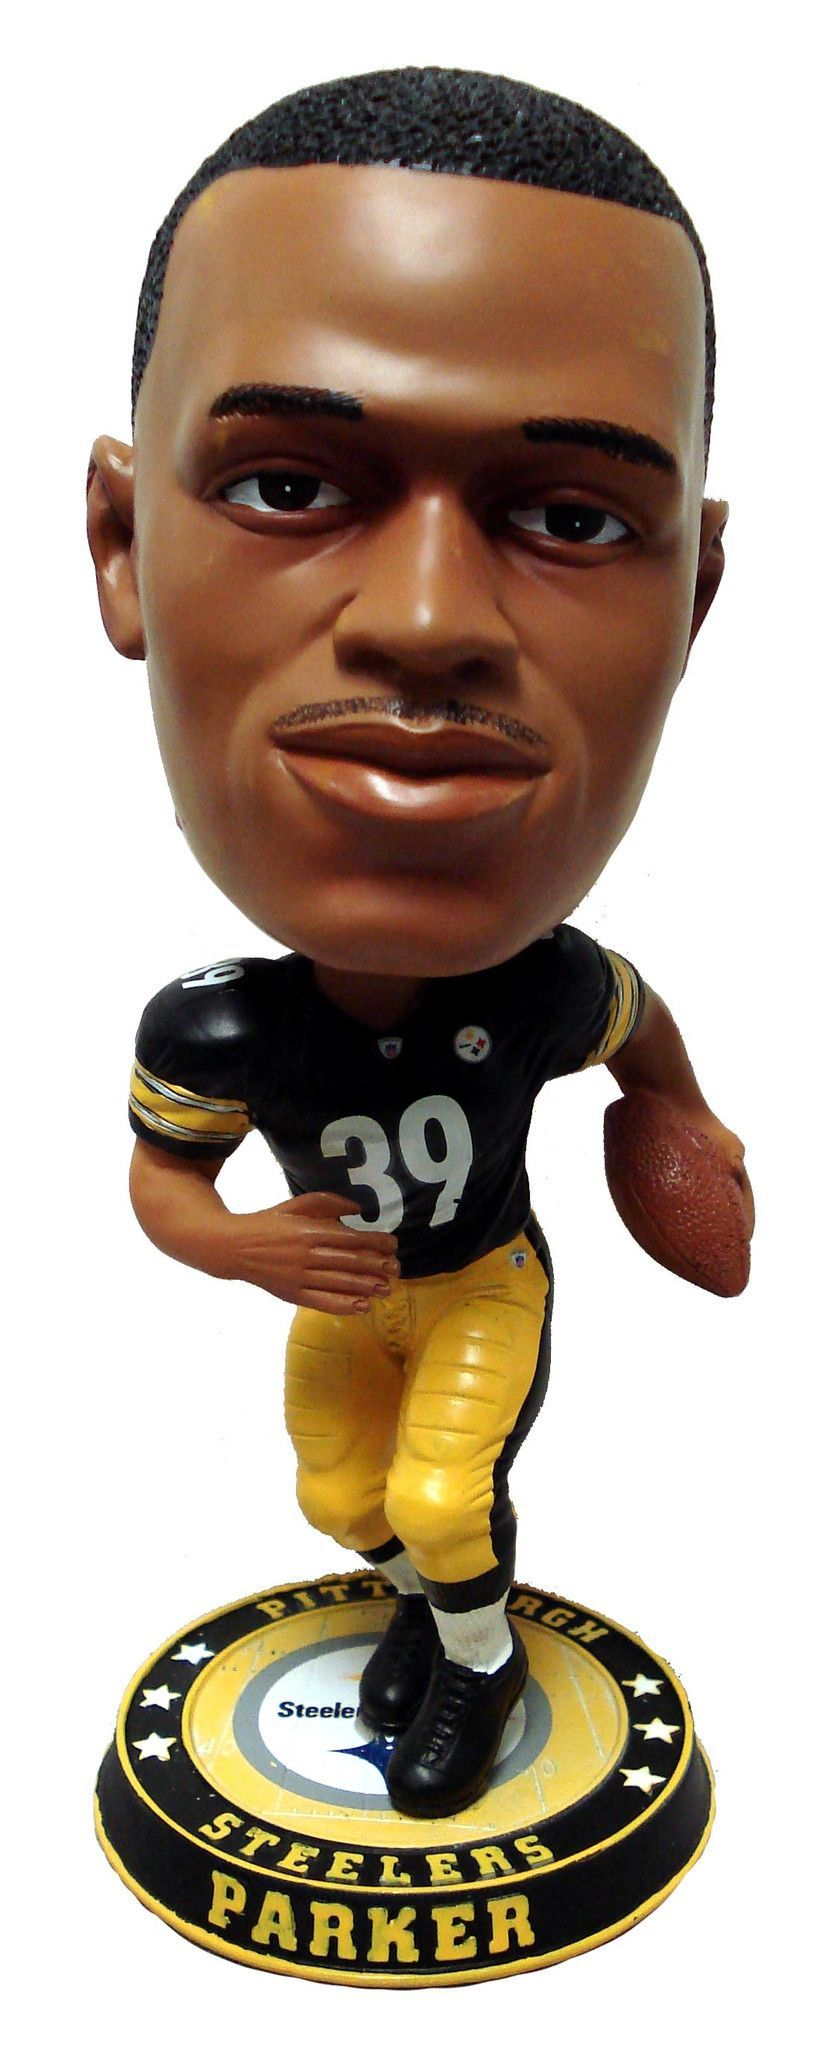 Pittsburgh Steelers Parker W. #39 2008 Bighead Bobble Road